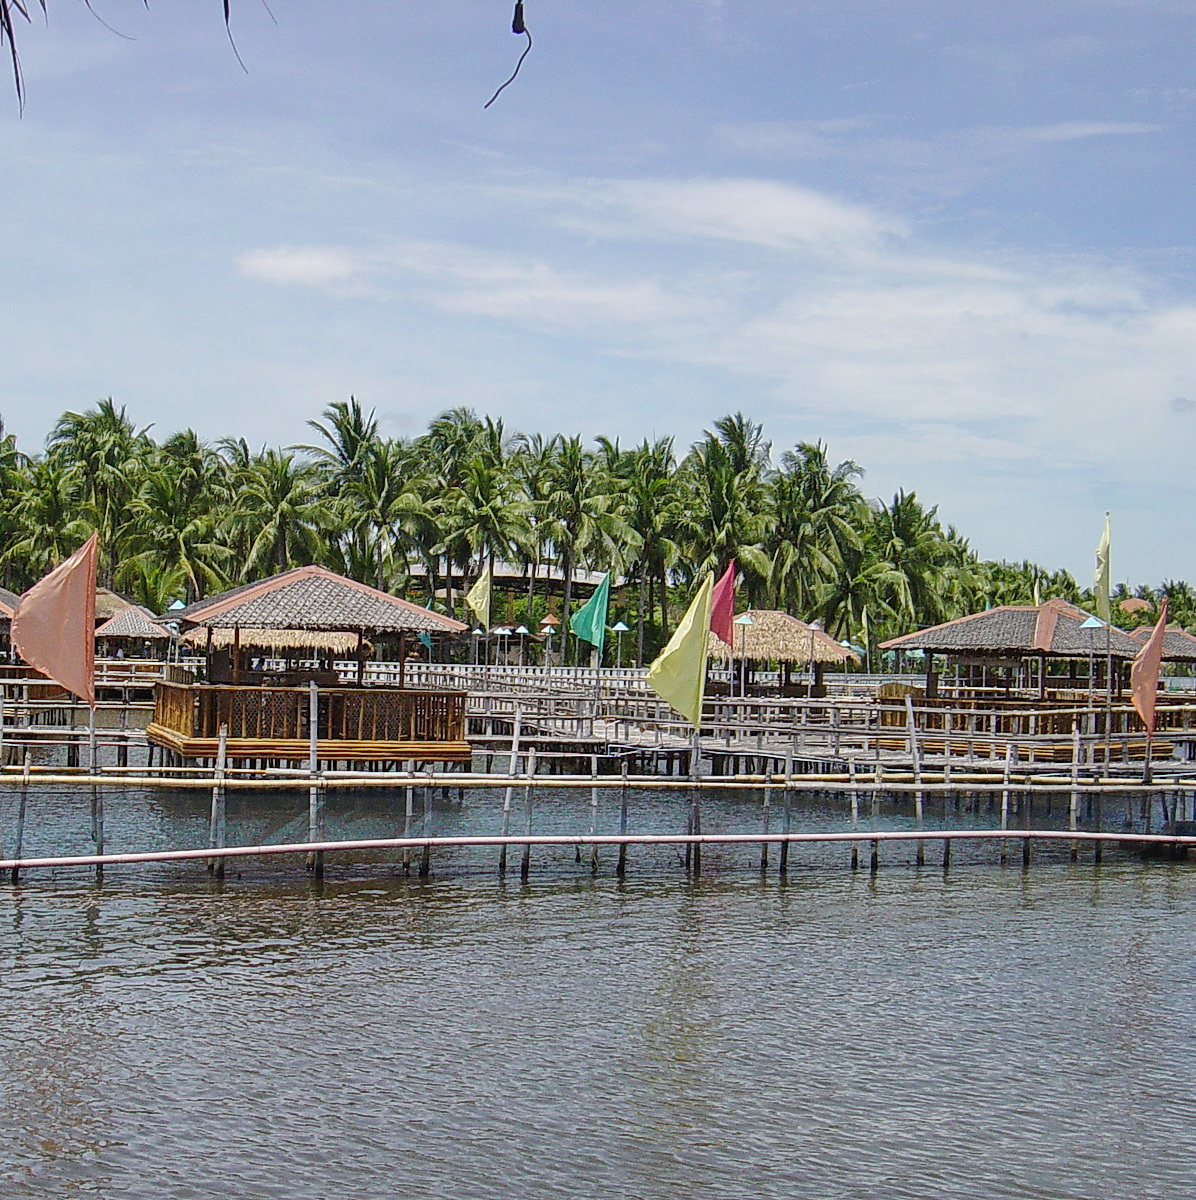 Dining in huts on stilts